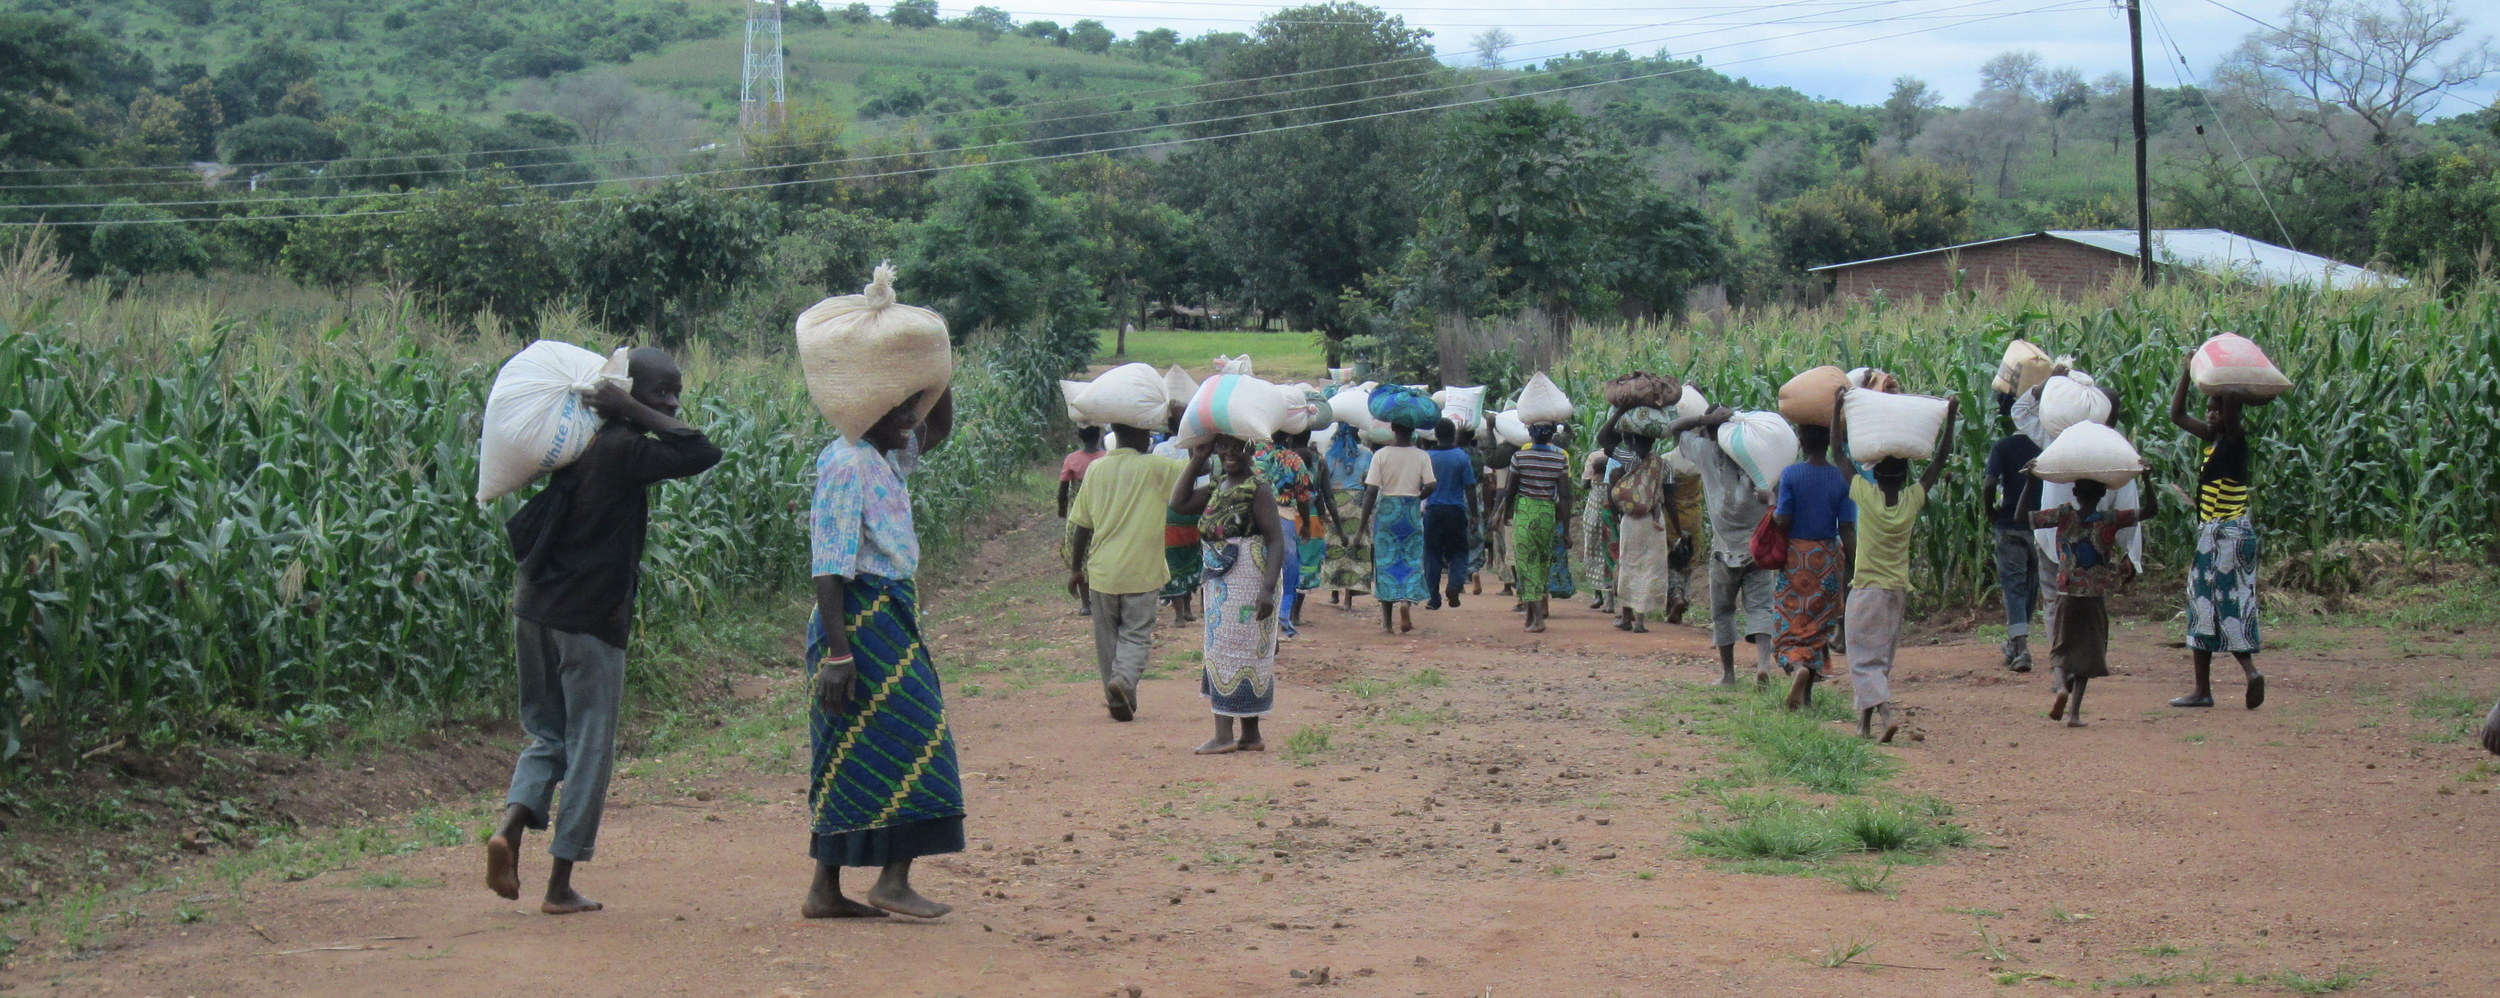 Families leaving with their corn.